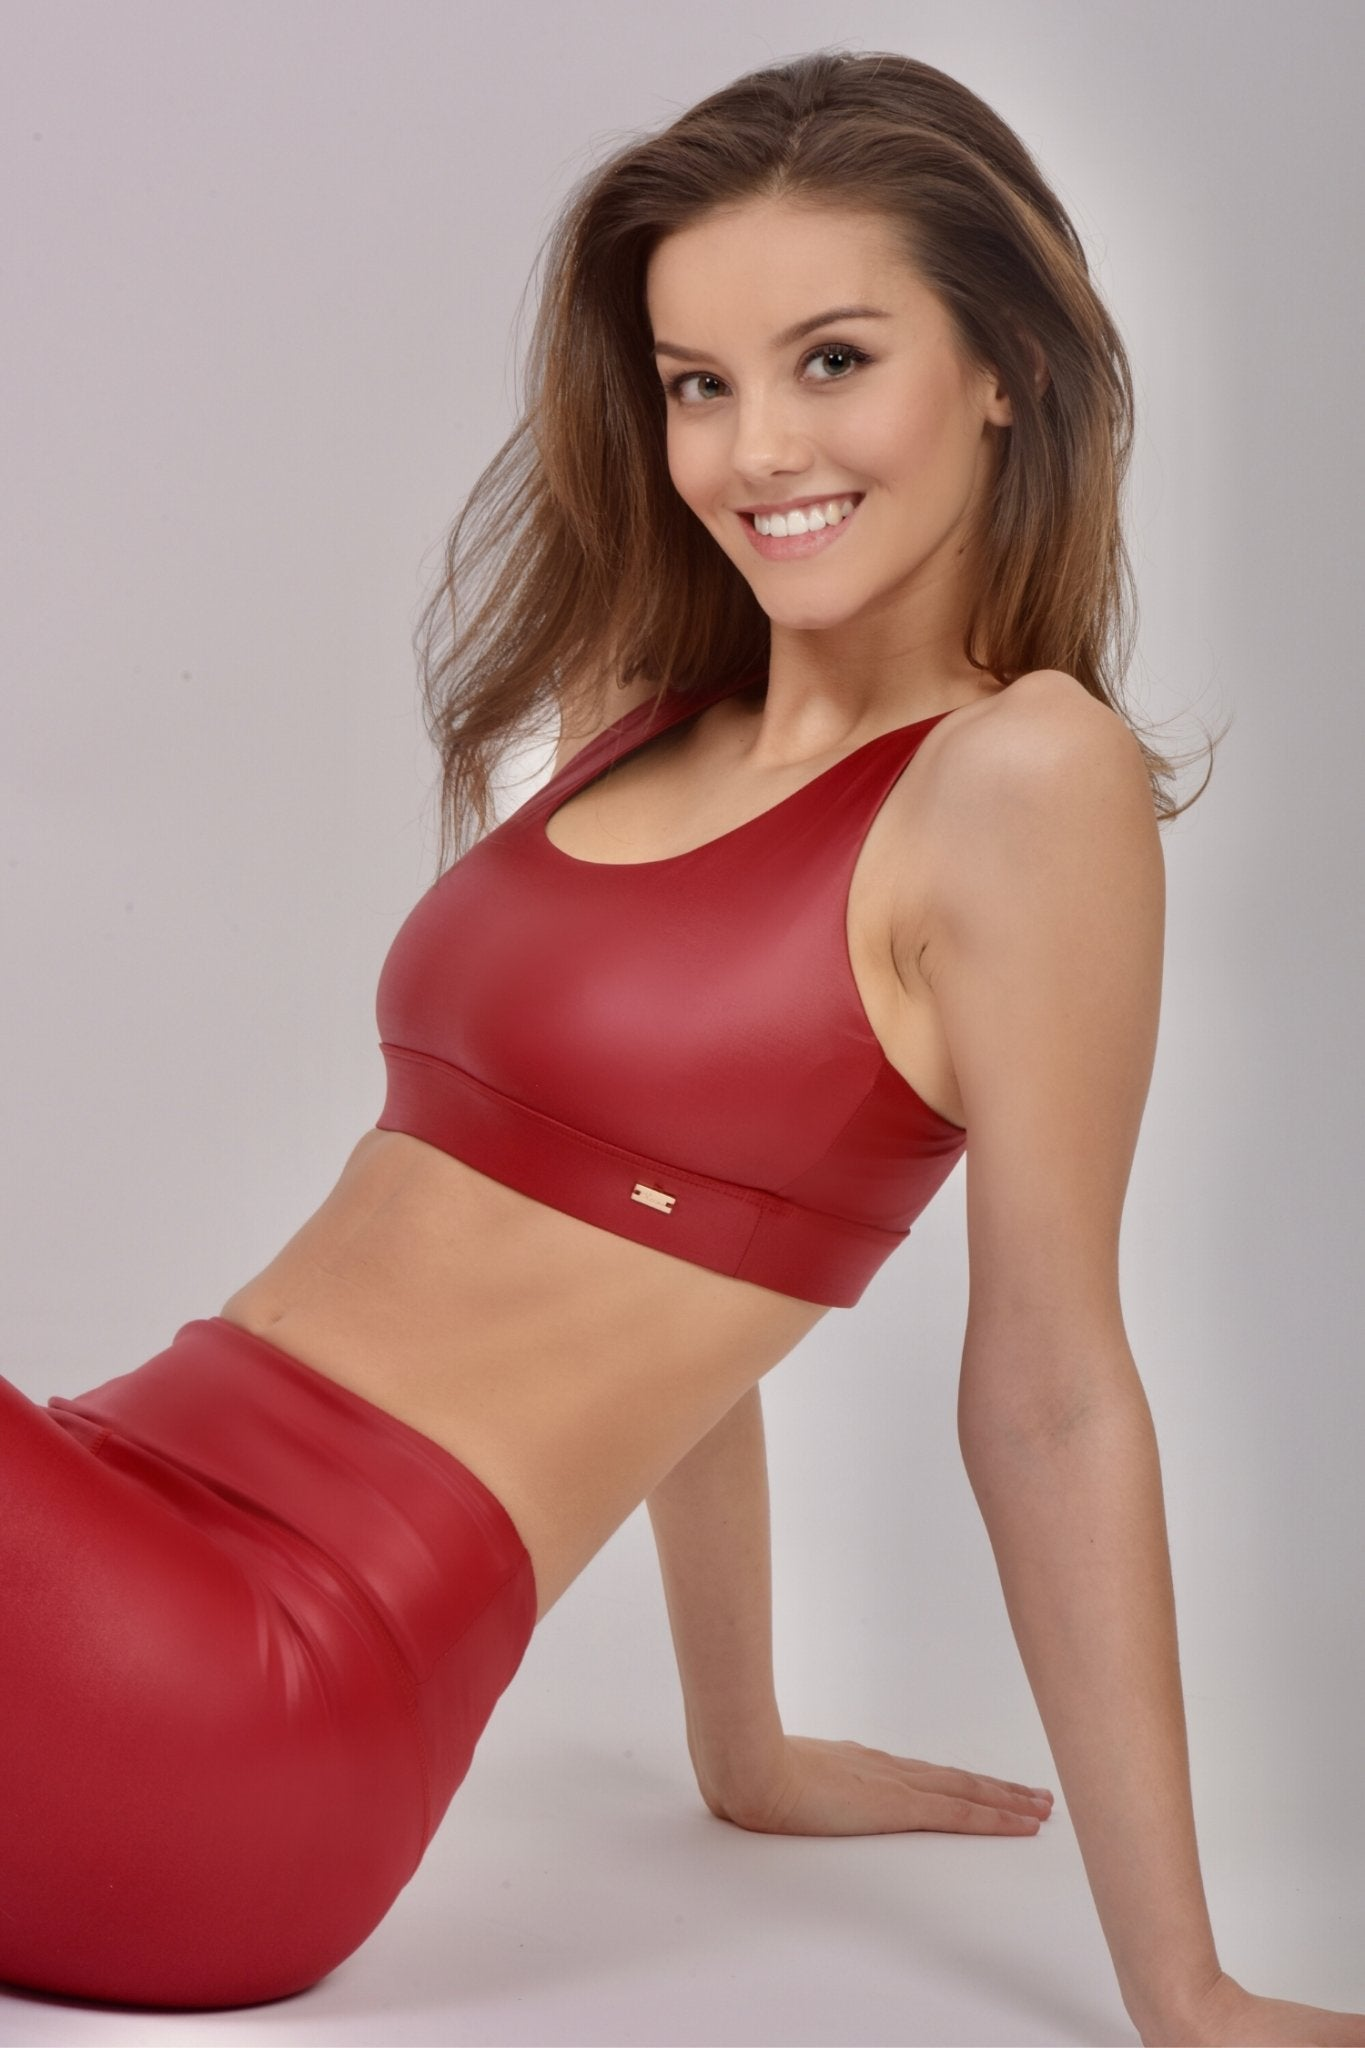 Shiny Red Sportbra - Xzena